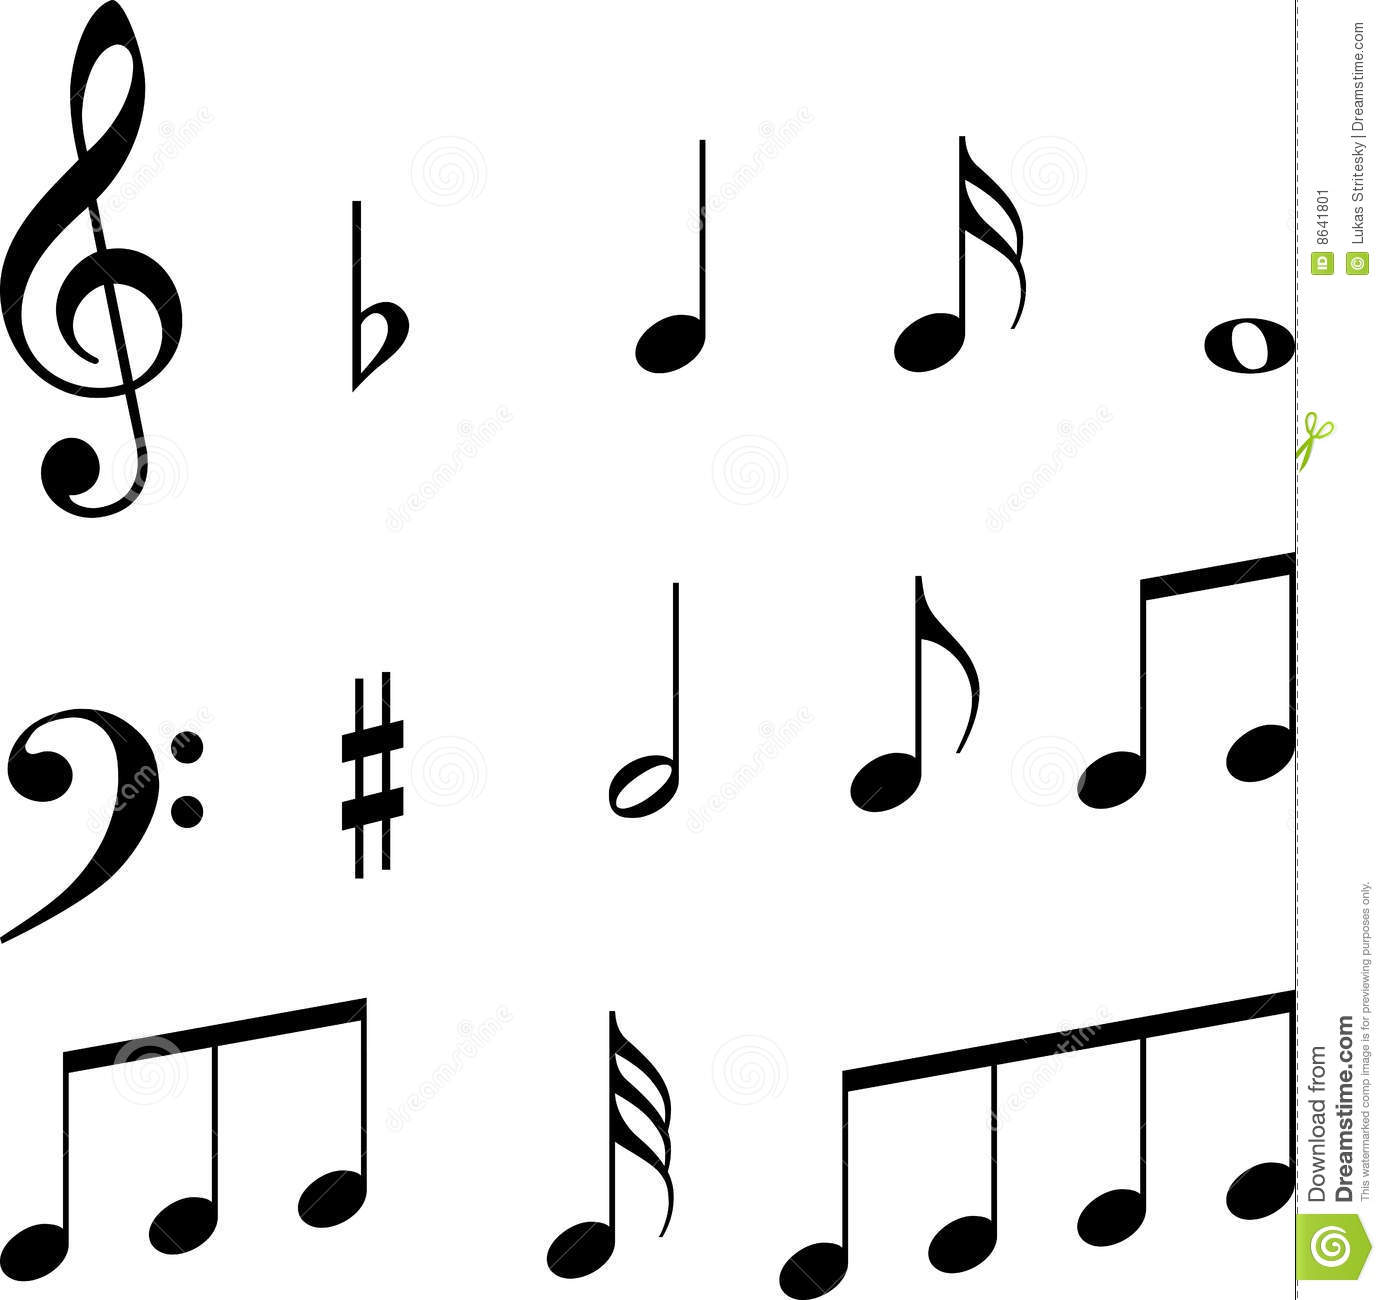 Music notes symbols names clipart panda free clipart images music20notes20symbols20for20facebook biocorpaavc Image collections